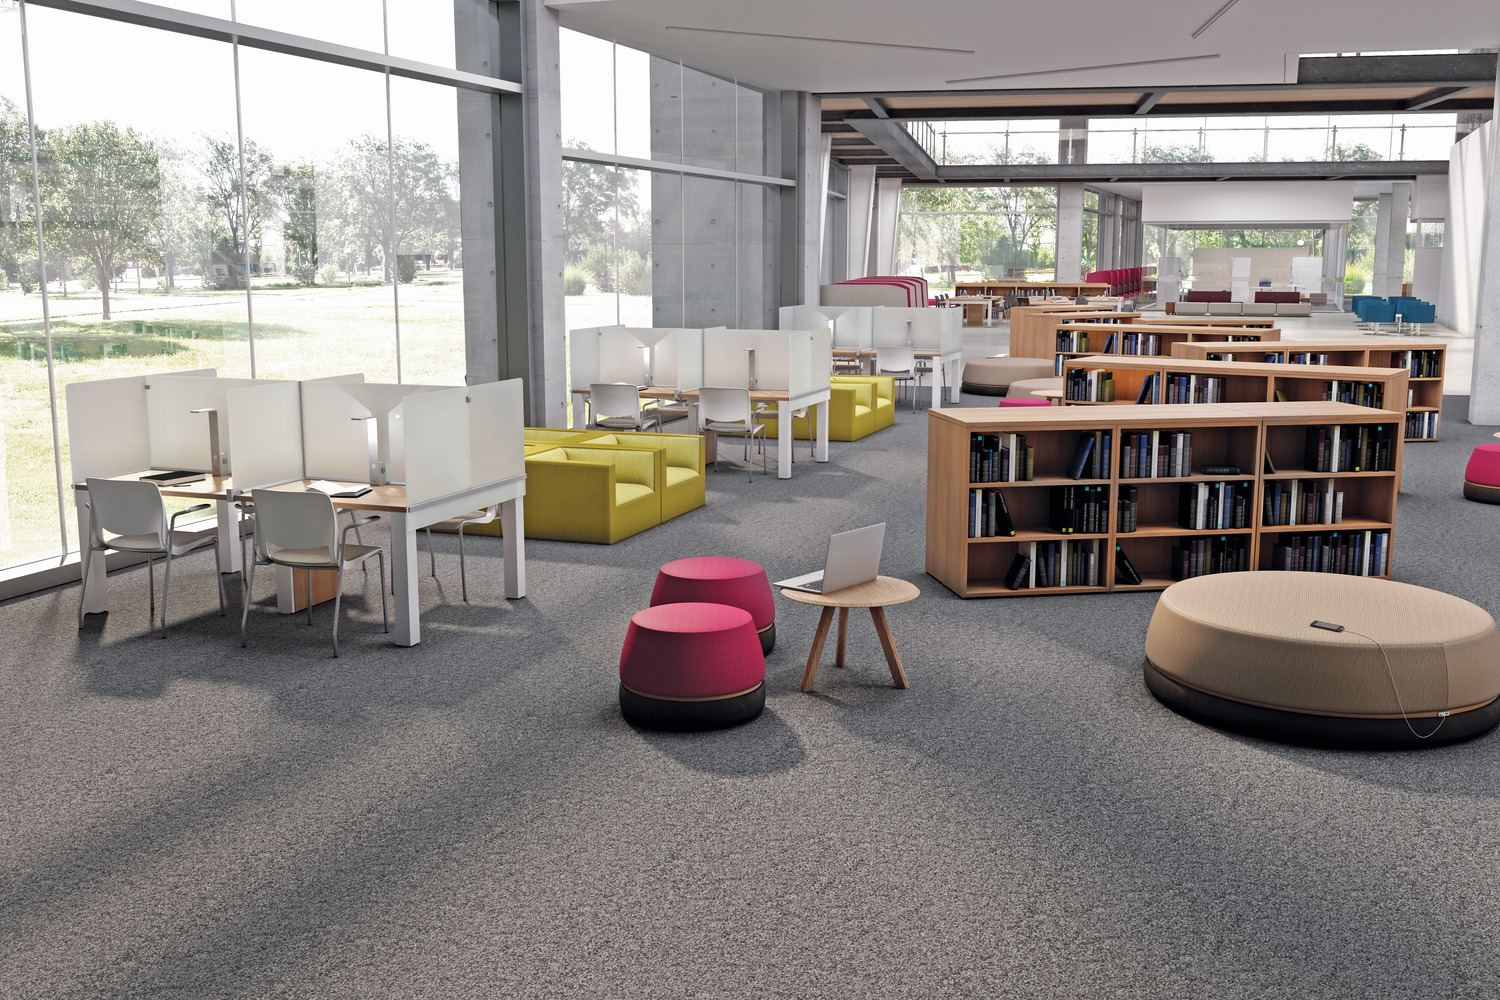 contemporary library furniture. Thesis Library Tables Divided By Translucent Glass Screens Minimize Distraction While Admitting Daylight. Crisp Lines Of The Tabletop And Table Legs Contemporary Furniture S